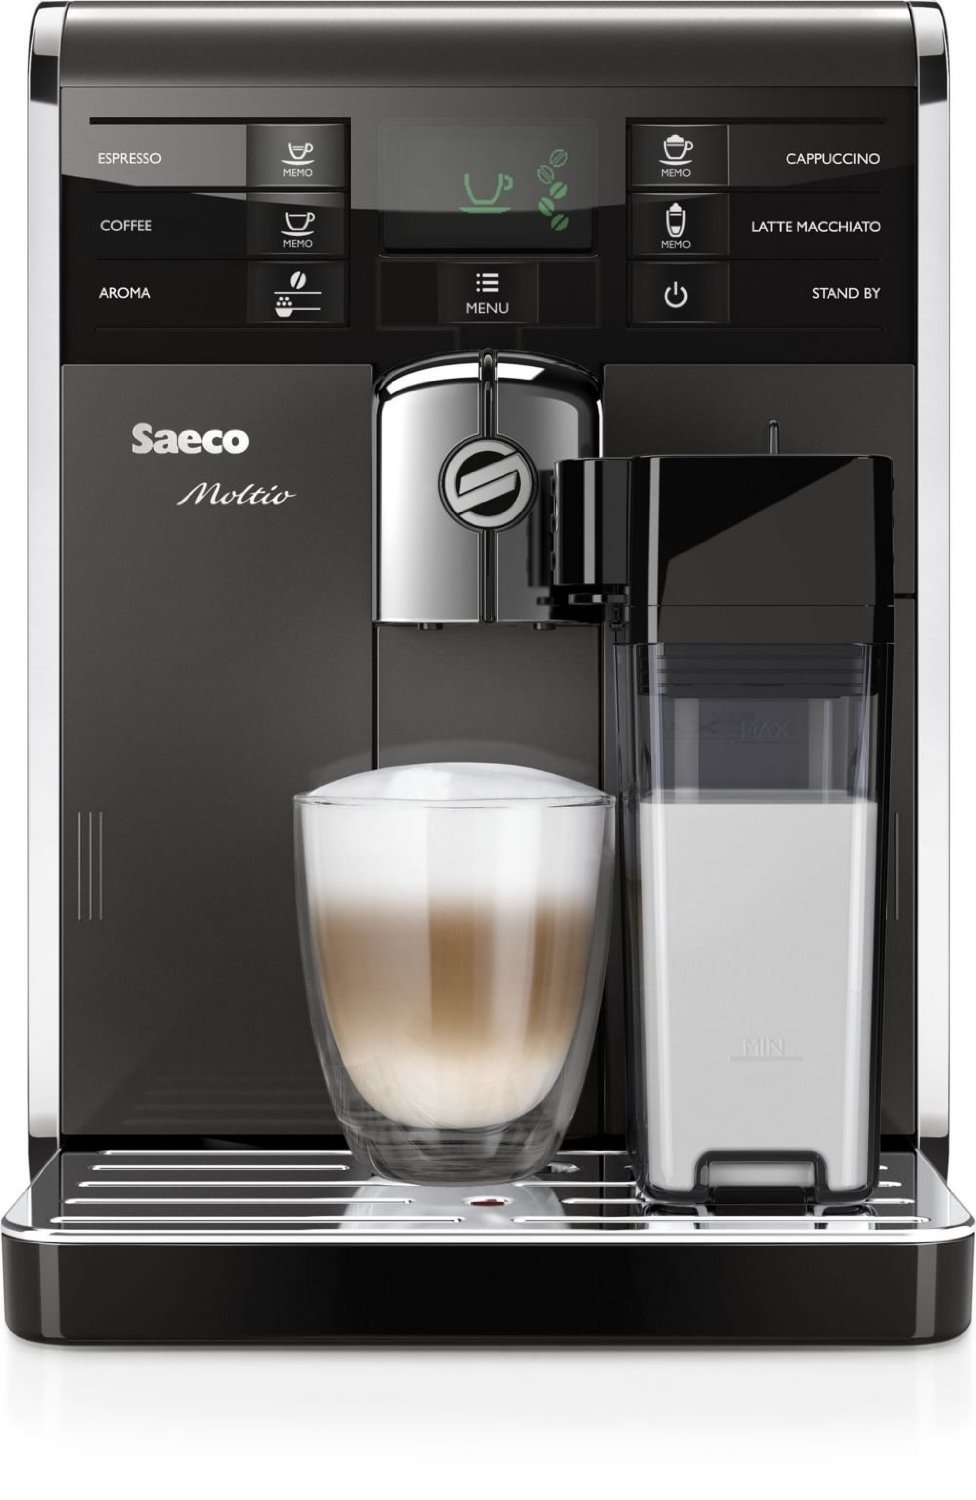 Saeco Hd8869/47 Moltio Super Automatic Espresso Machine (View on Amazon)